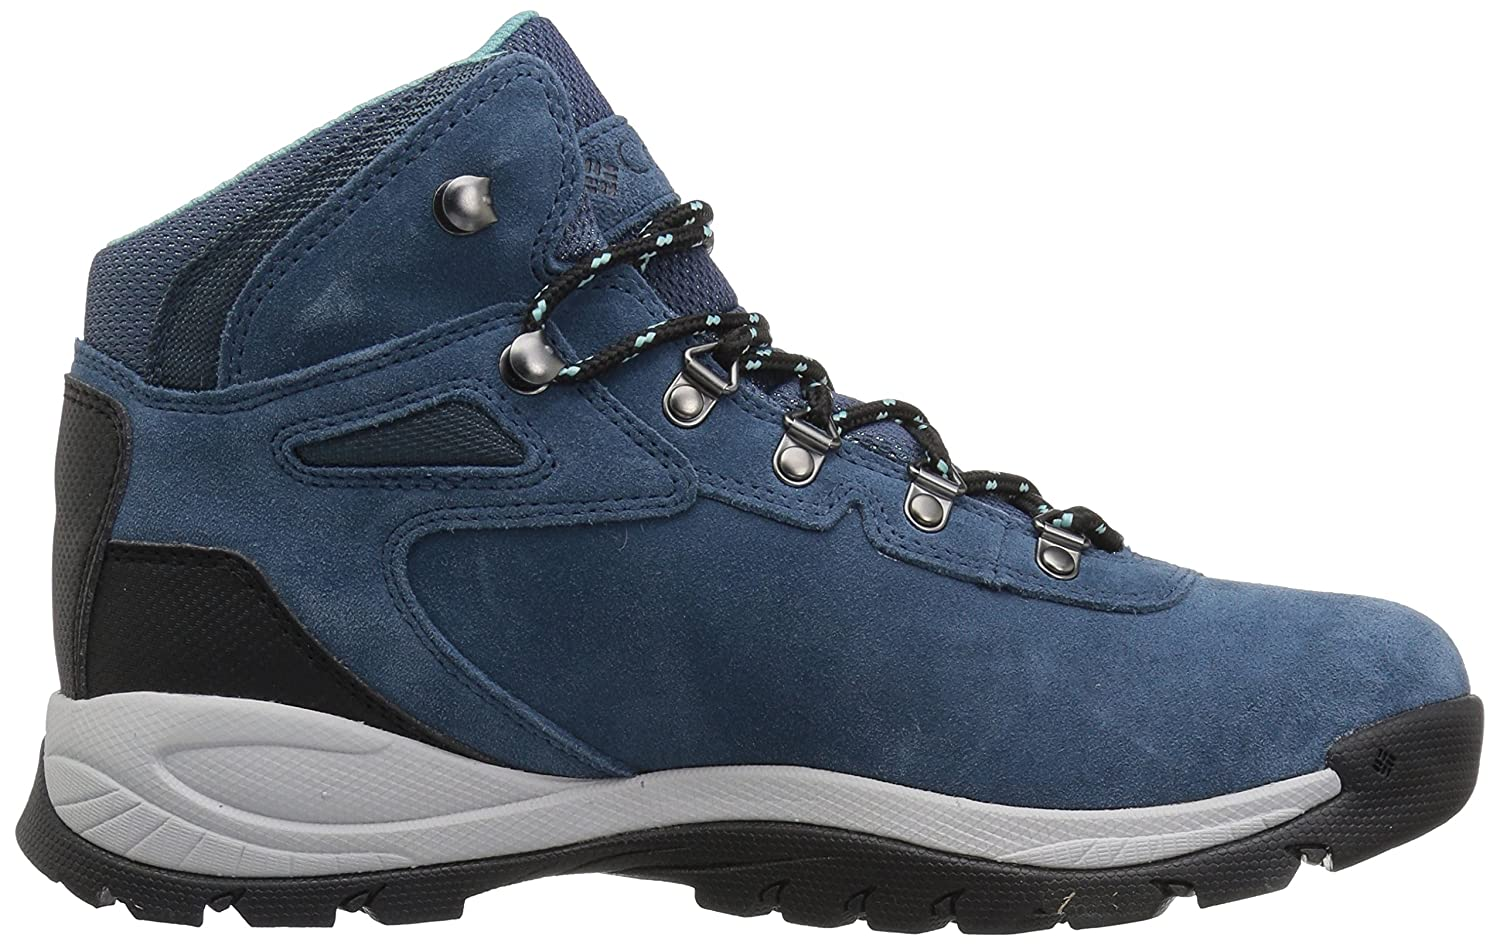 Columbia Women's Newton Ridge Plus Waterproof Amped B(M) Hiking Boot B073RNTGR1 9.5 B(M) Amped US|Whale, Iceberg 32e810